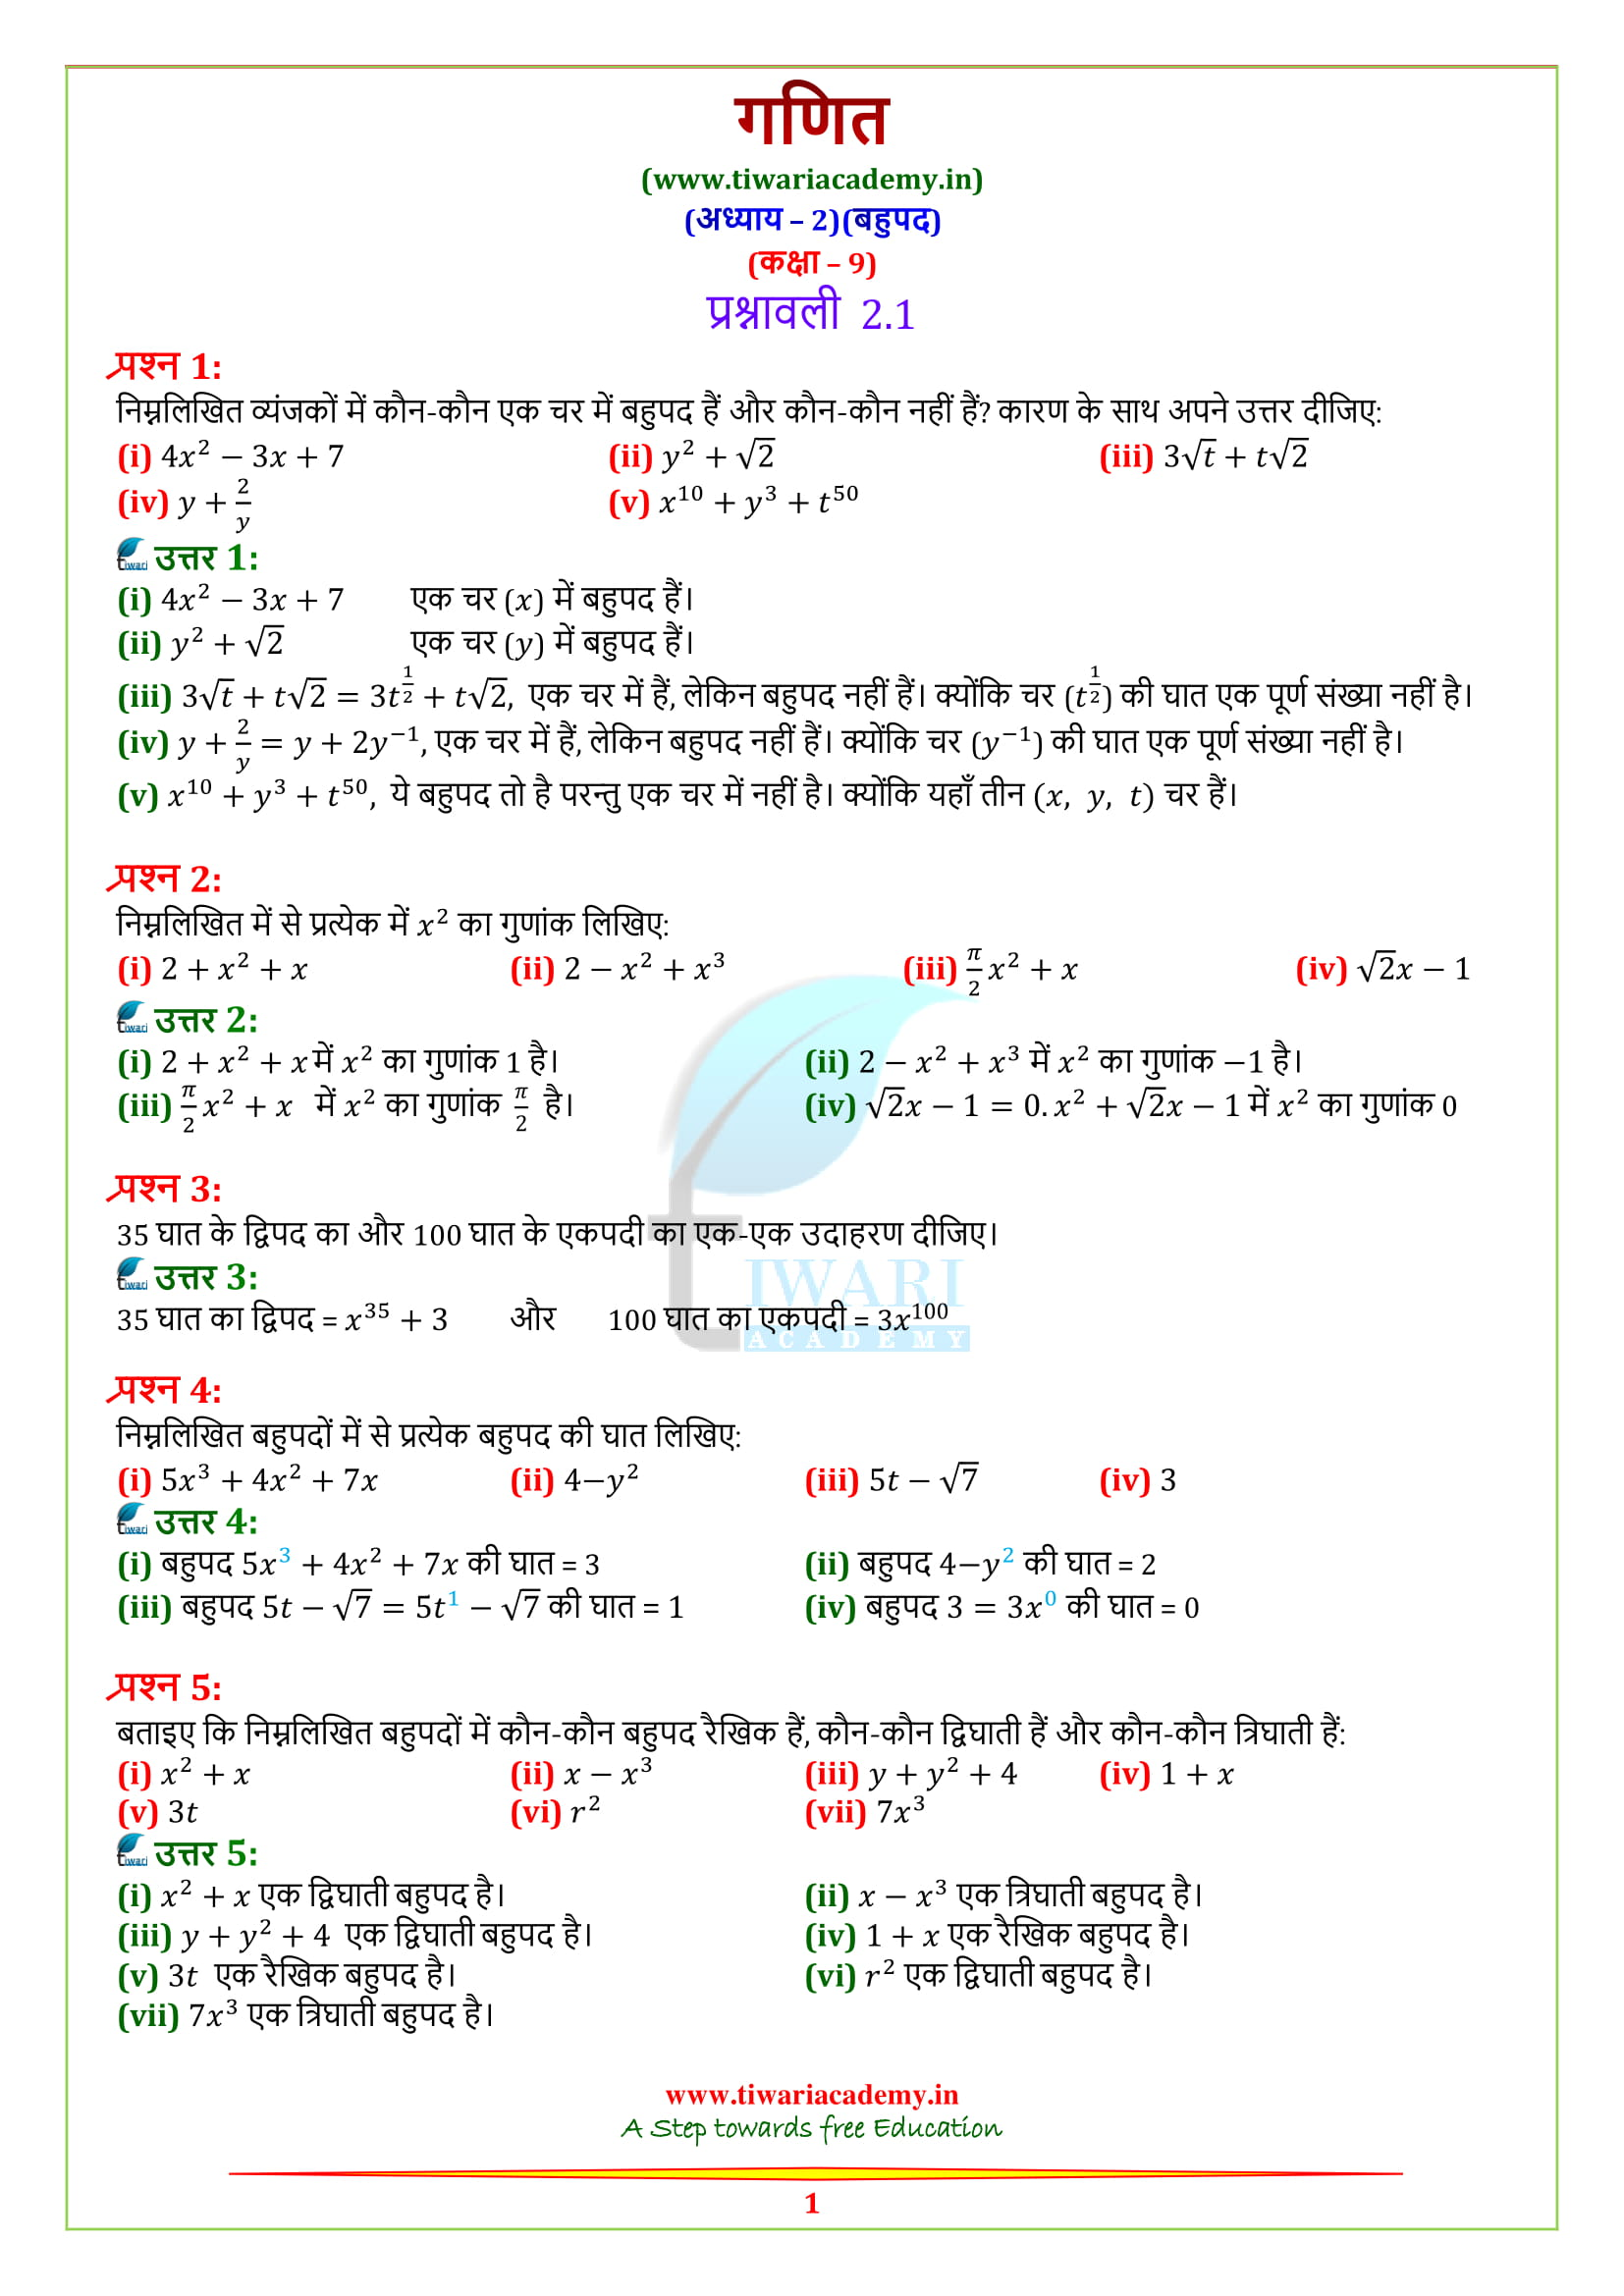 9 Maths exercise 2.1 solutions in hindi